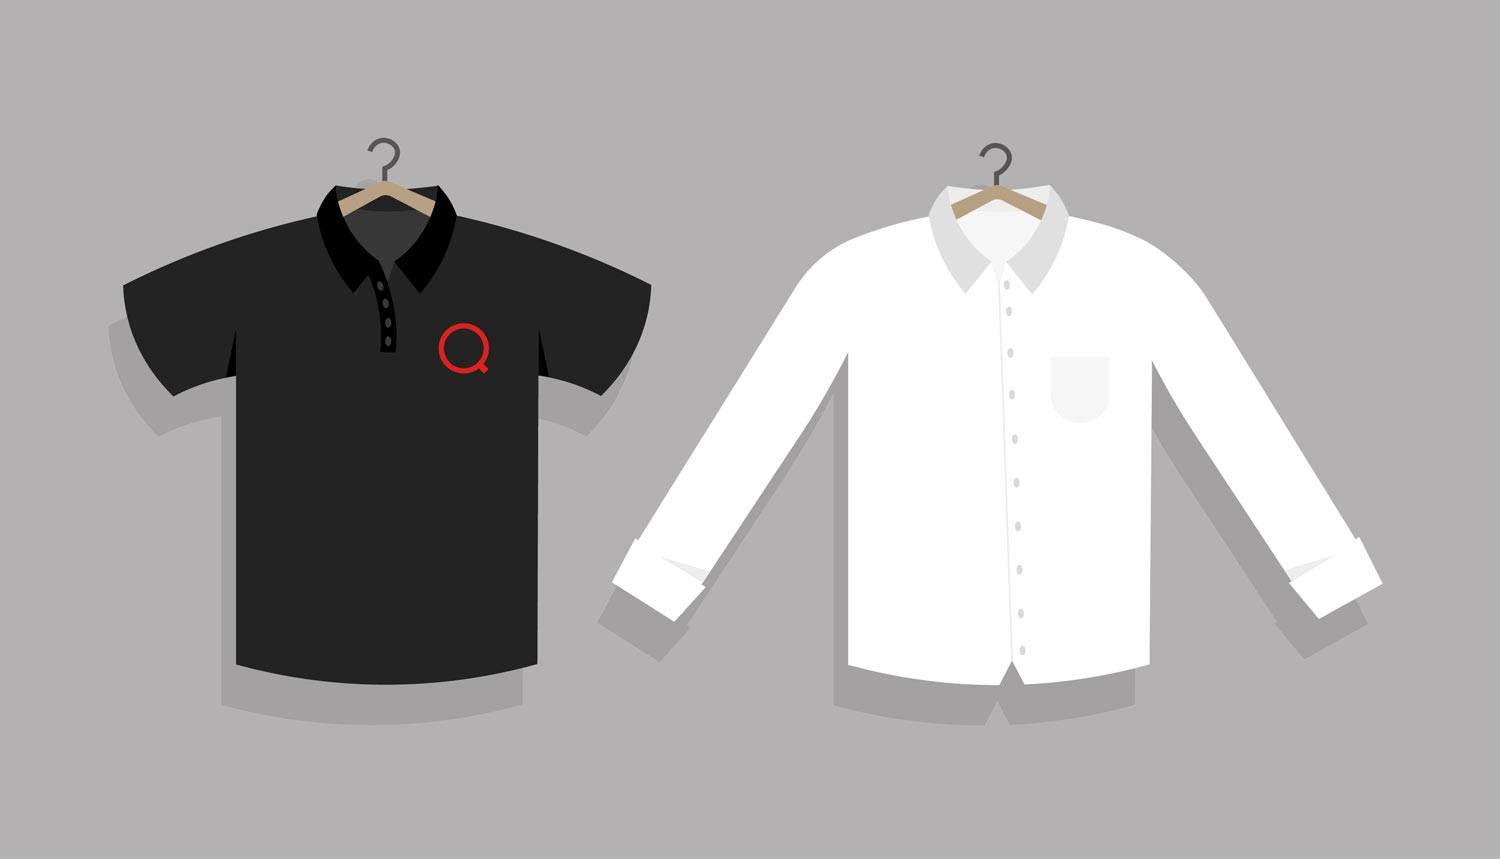 illustration of employee uniforms